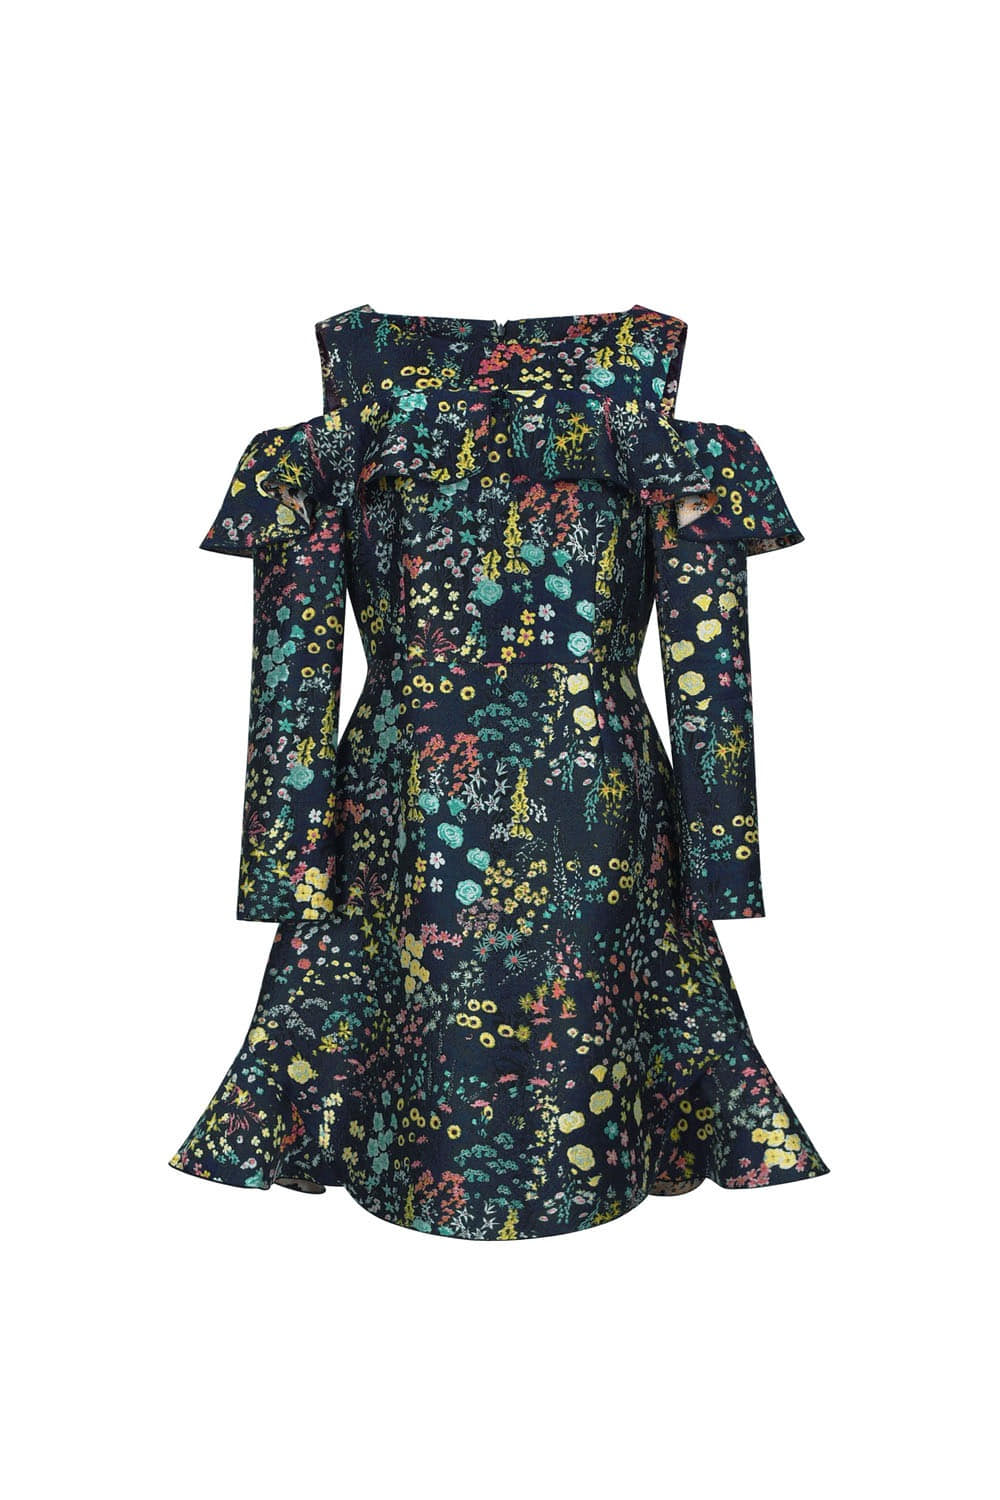 Flower garden jacquard dress